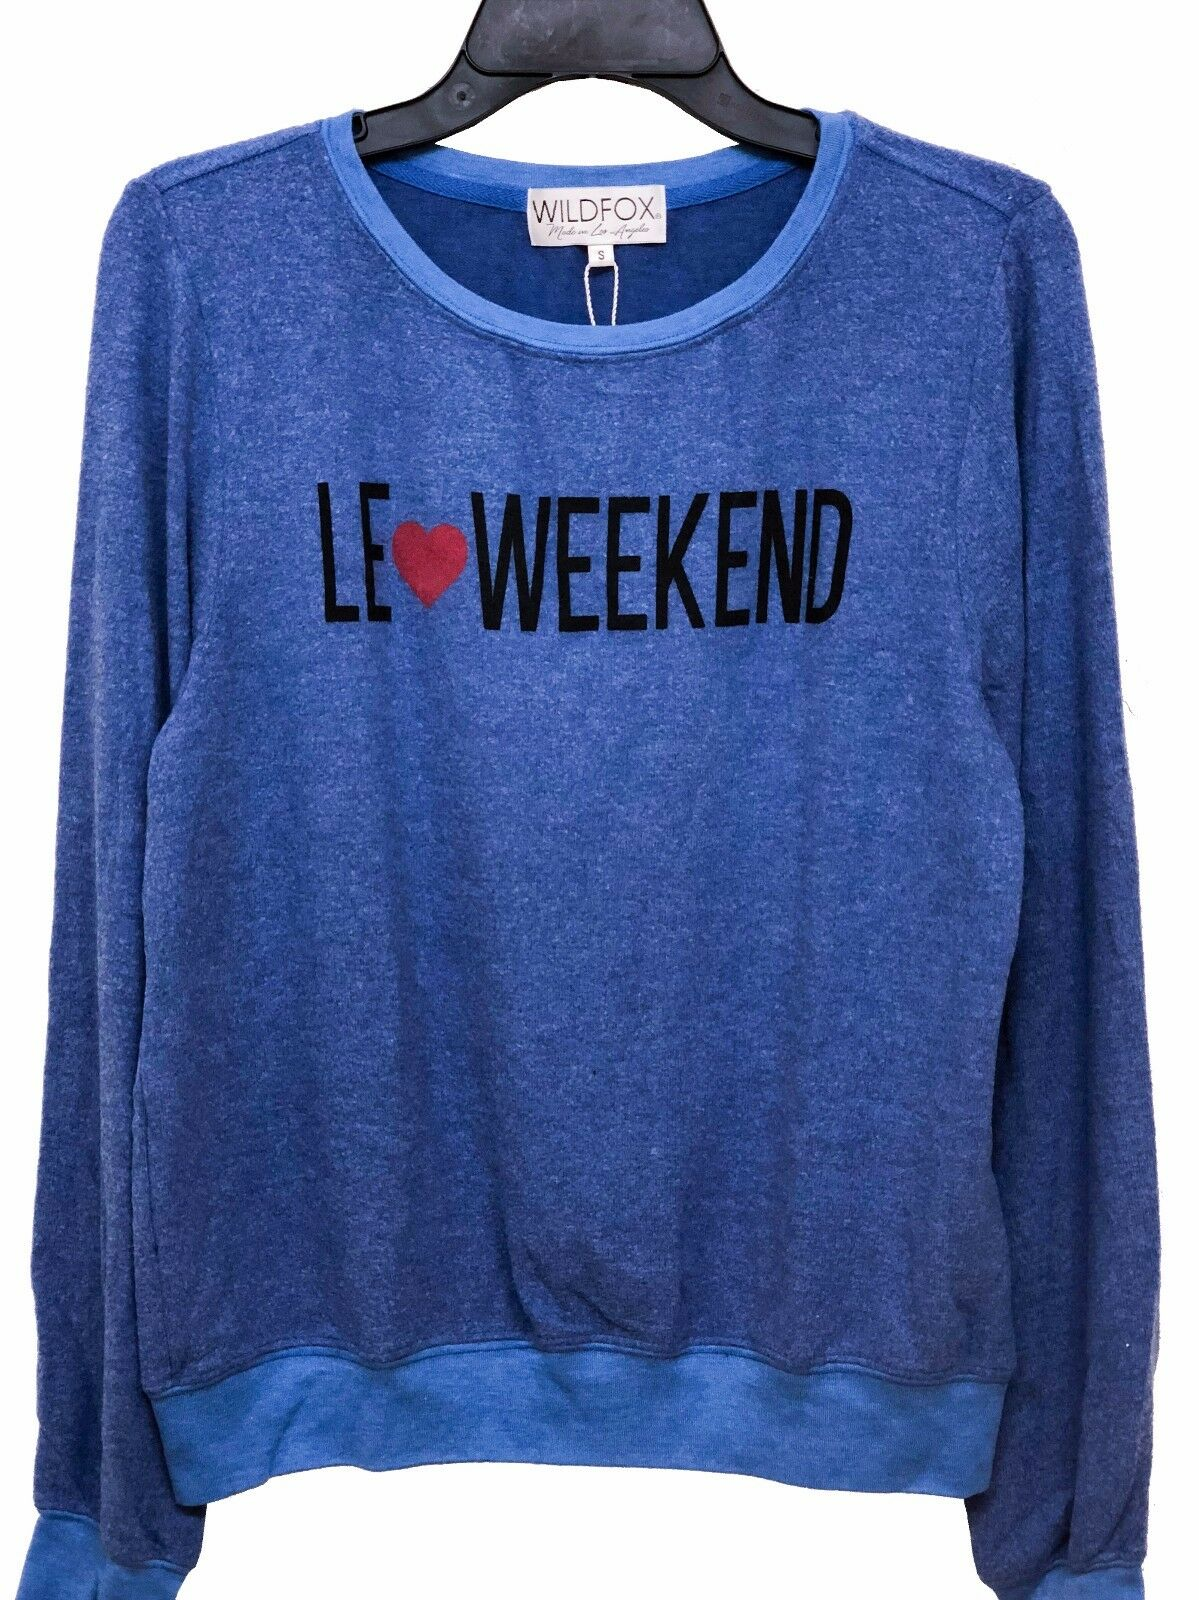 Wildfox Couture damen Vintage Le Weekend BBJ Jumper Sweater Shirt Top S M L